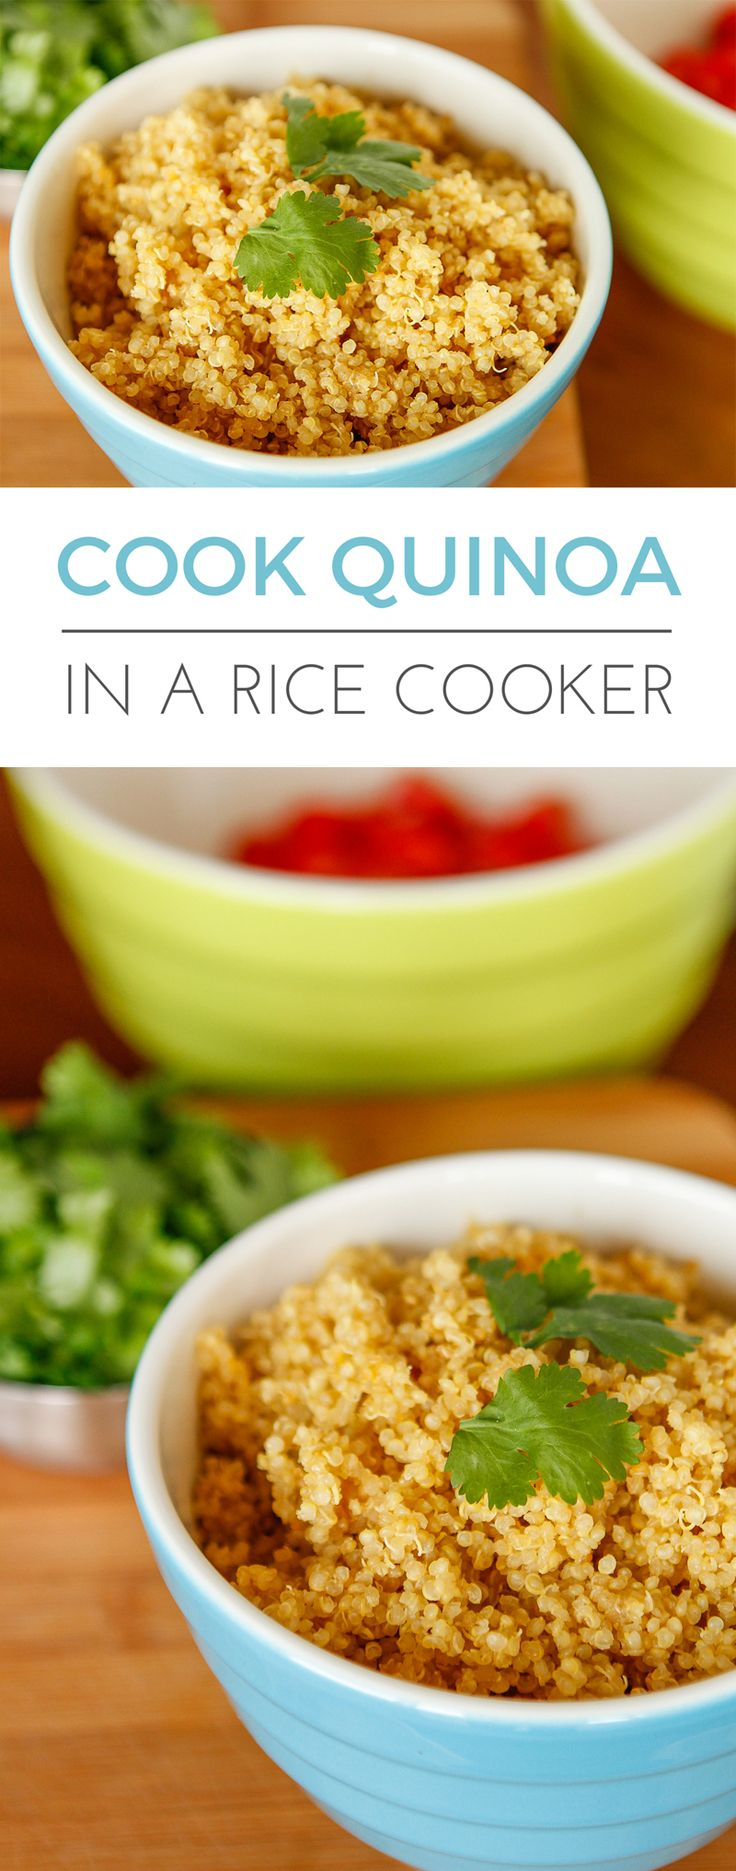 How To Cook Quinoa In A Rice Cooker  Yep, Rice Cookers Are Good